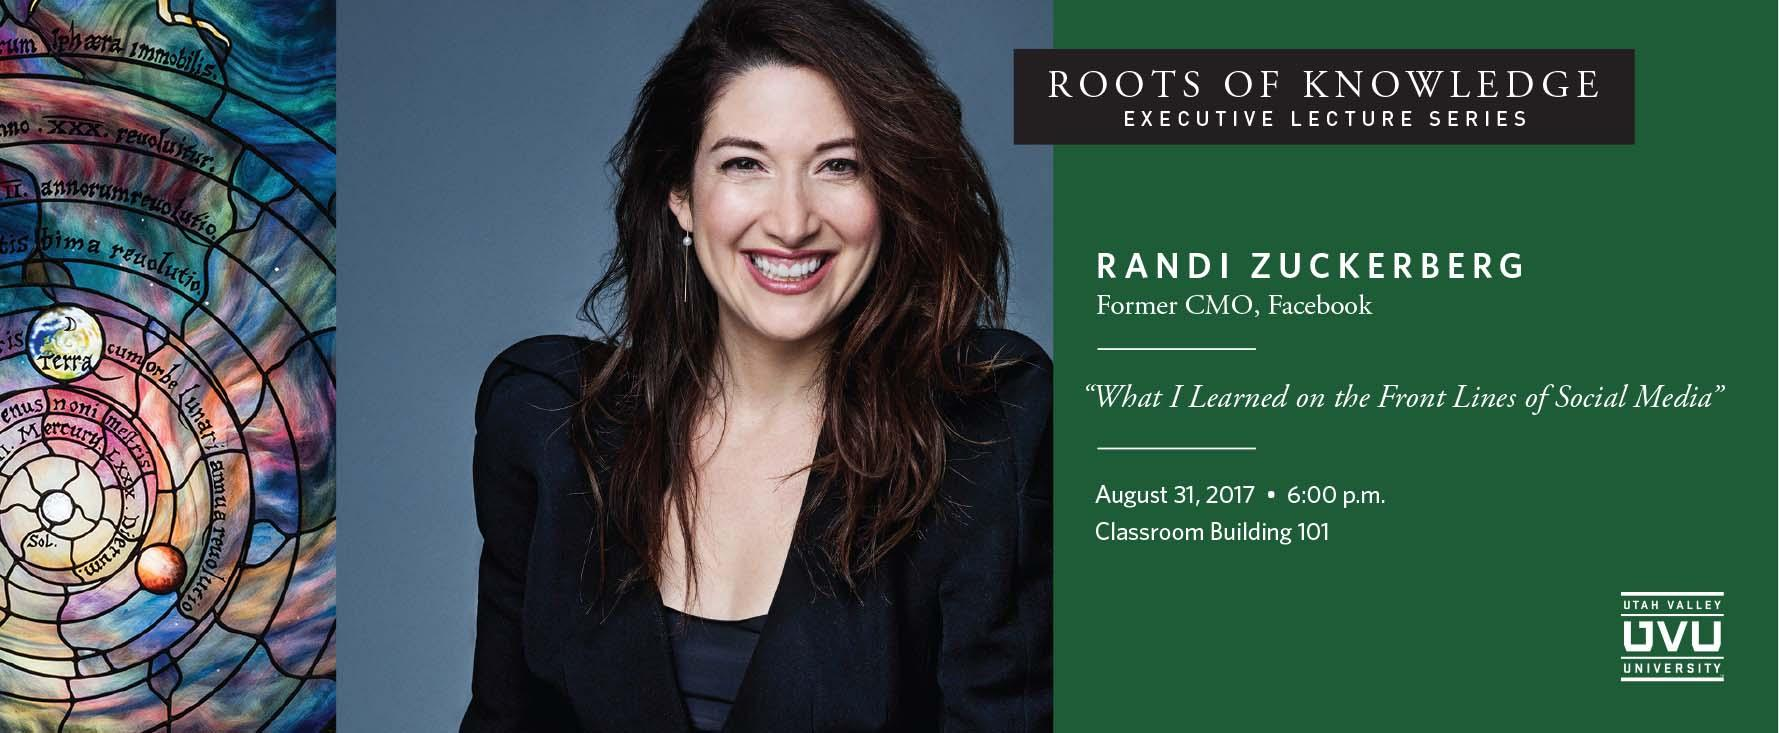 Roots of Knowledge Executive Lecture Series featuring Randi Zuckerberg